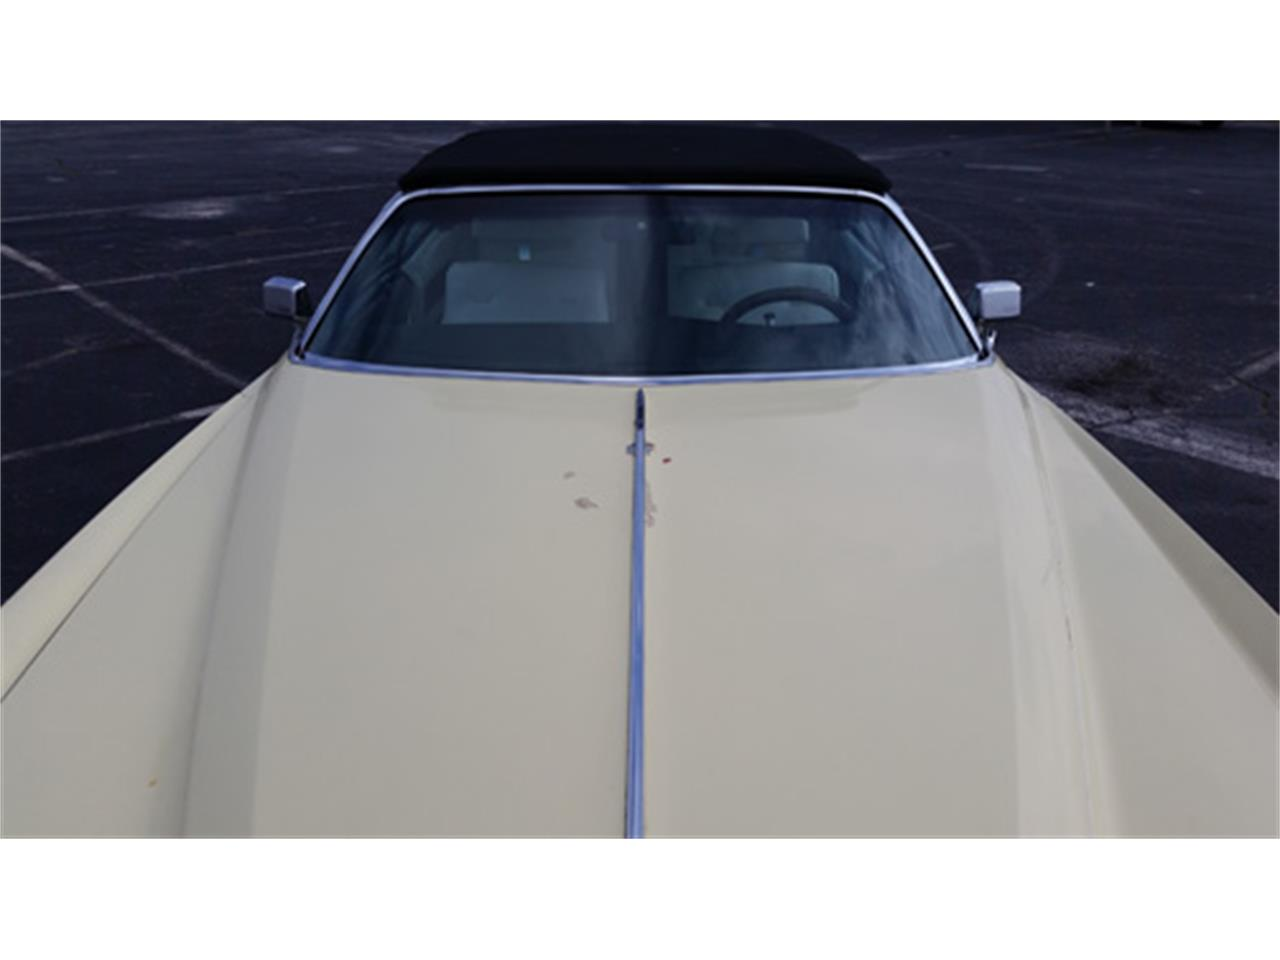 1971 Cadillac Eldorado (CC-1321959) for sale in Simpsonville, South Carolina